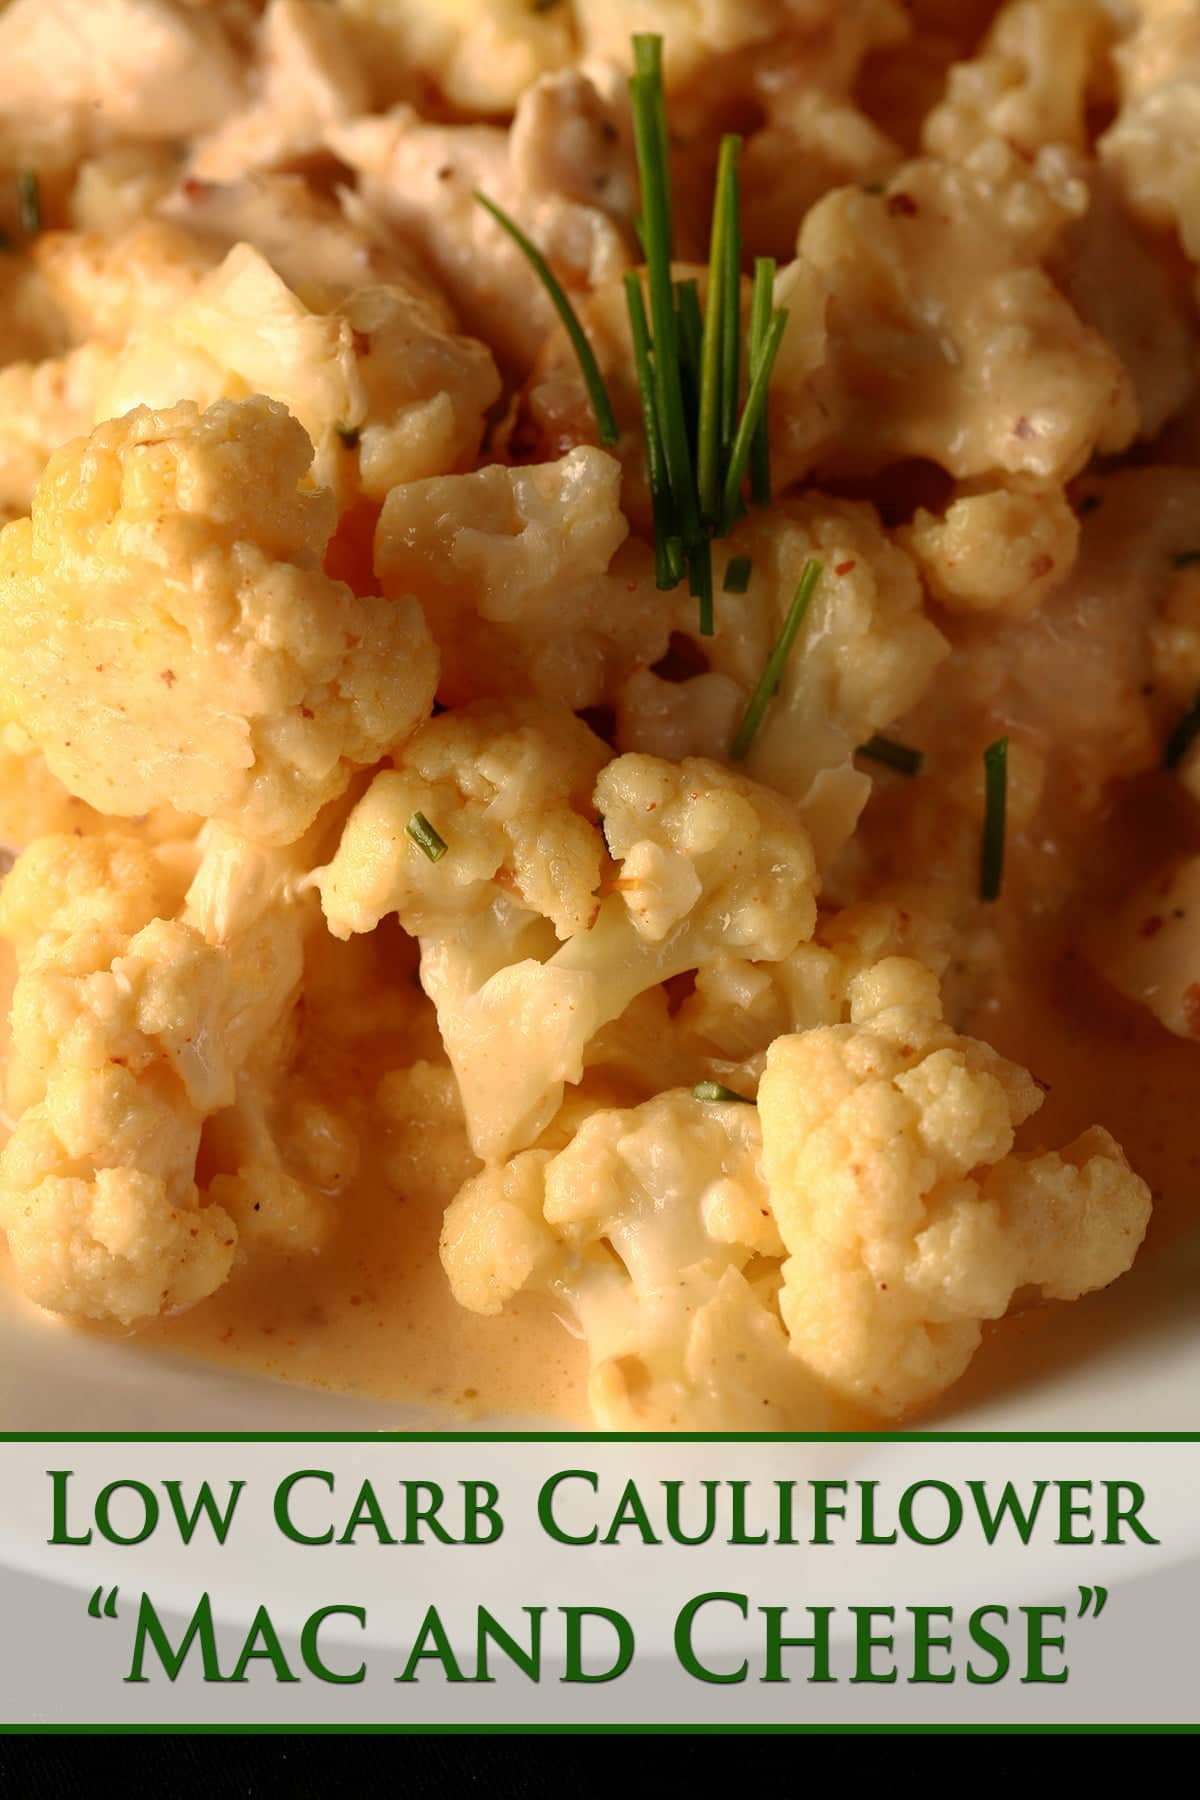 Close up view of a bowl of small pieces of cauliflower, coated in a creamy cheese sauce.